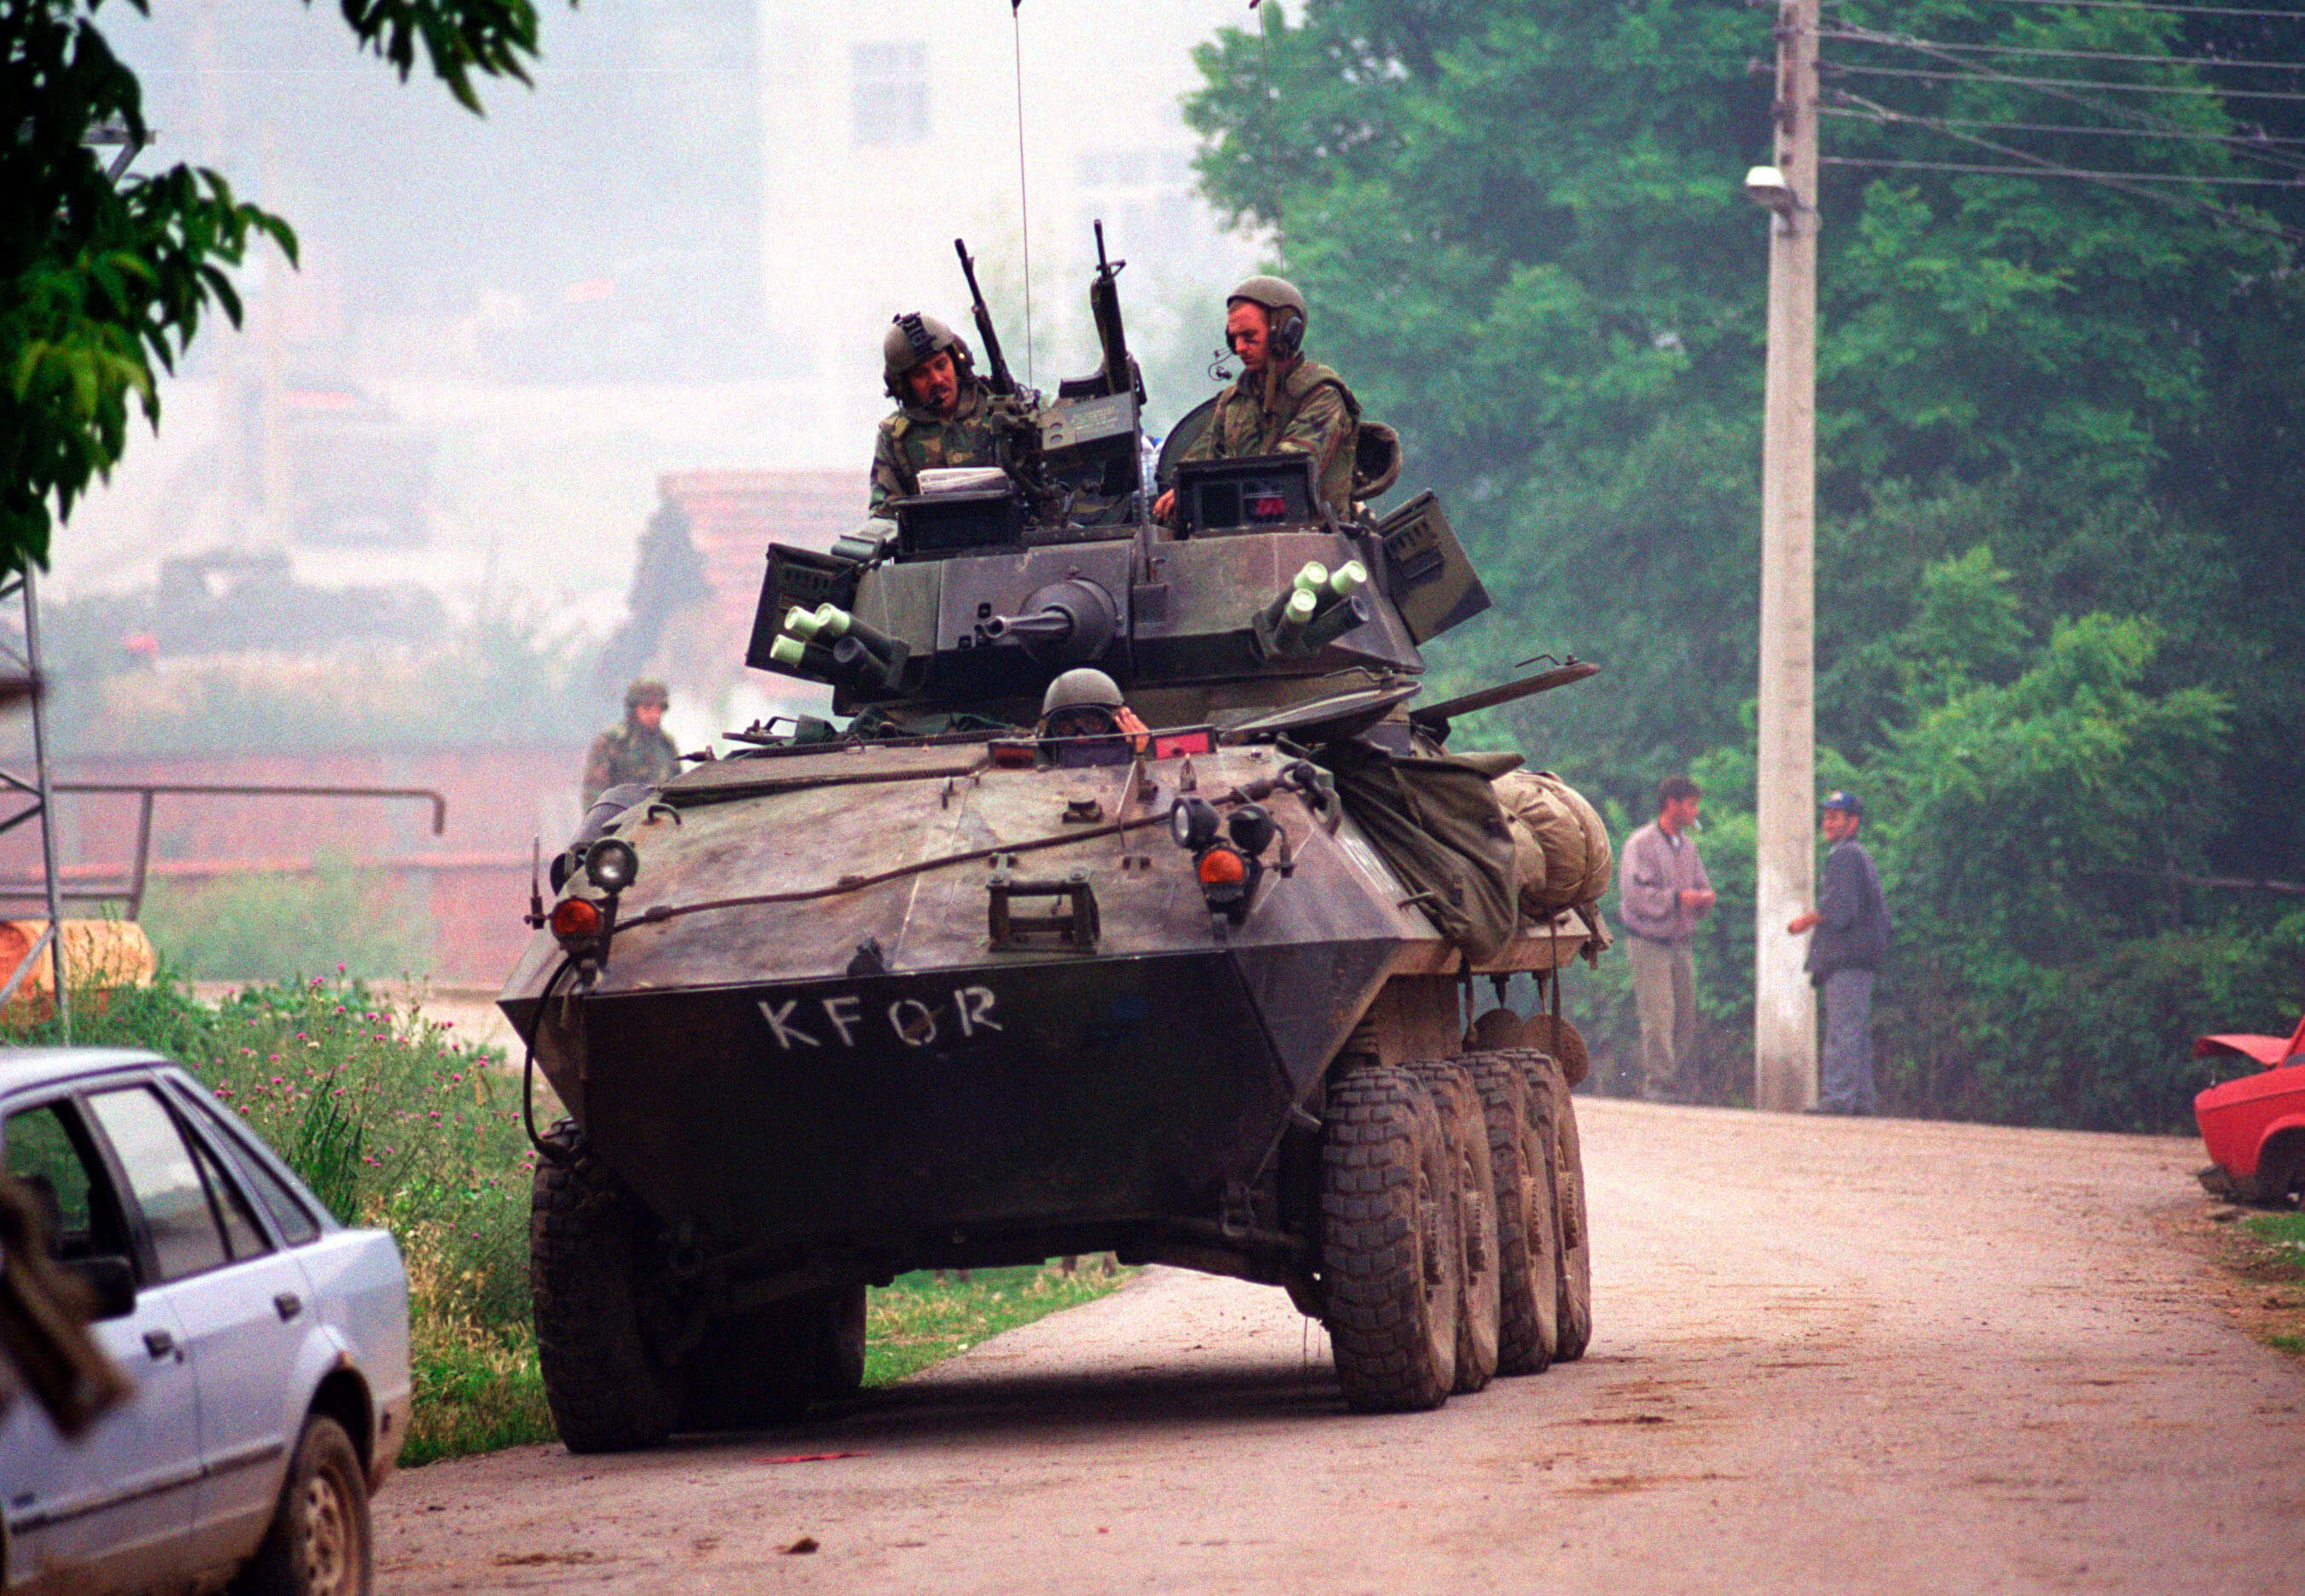 990627-M-5696S-011 	A U.S. Marine Corps Light Armored Vehicle (LAV-25) from the 2nd Light Armored Reconnaissance Battalion patrols in the village of Zegra, Kosovo, on June 27, 1999.  Elements of the 26th Marine Expeditionary Unit are deployed from ships of the USS Kearsarge Amphibious Ready Group as an enabling force for KFOR.  KFOR is the NATO-led, international military force which will deploy into Kosovo on a peacekeeping mission known as Operation Joint Guardian.  KFOR will ultimately consist of over 50,000 troops from more than 24 contributing nations, including NATO member-states, Partnership for Peace nations and others.  DoD photo by Sgt. Craig J. Shell, U.S. Marine Corps.  (Released)